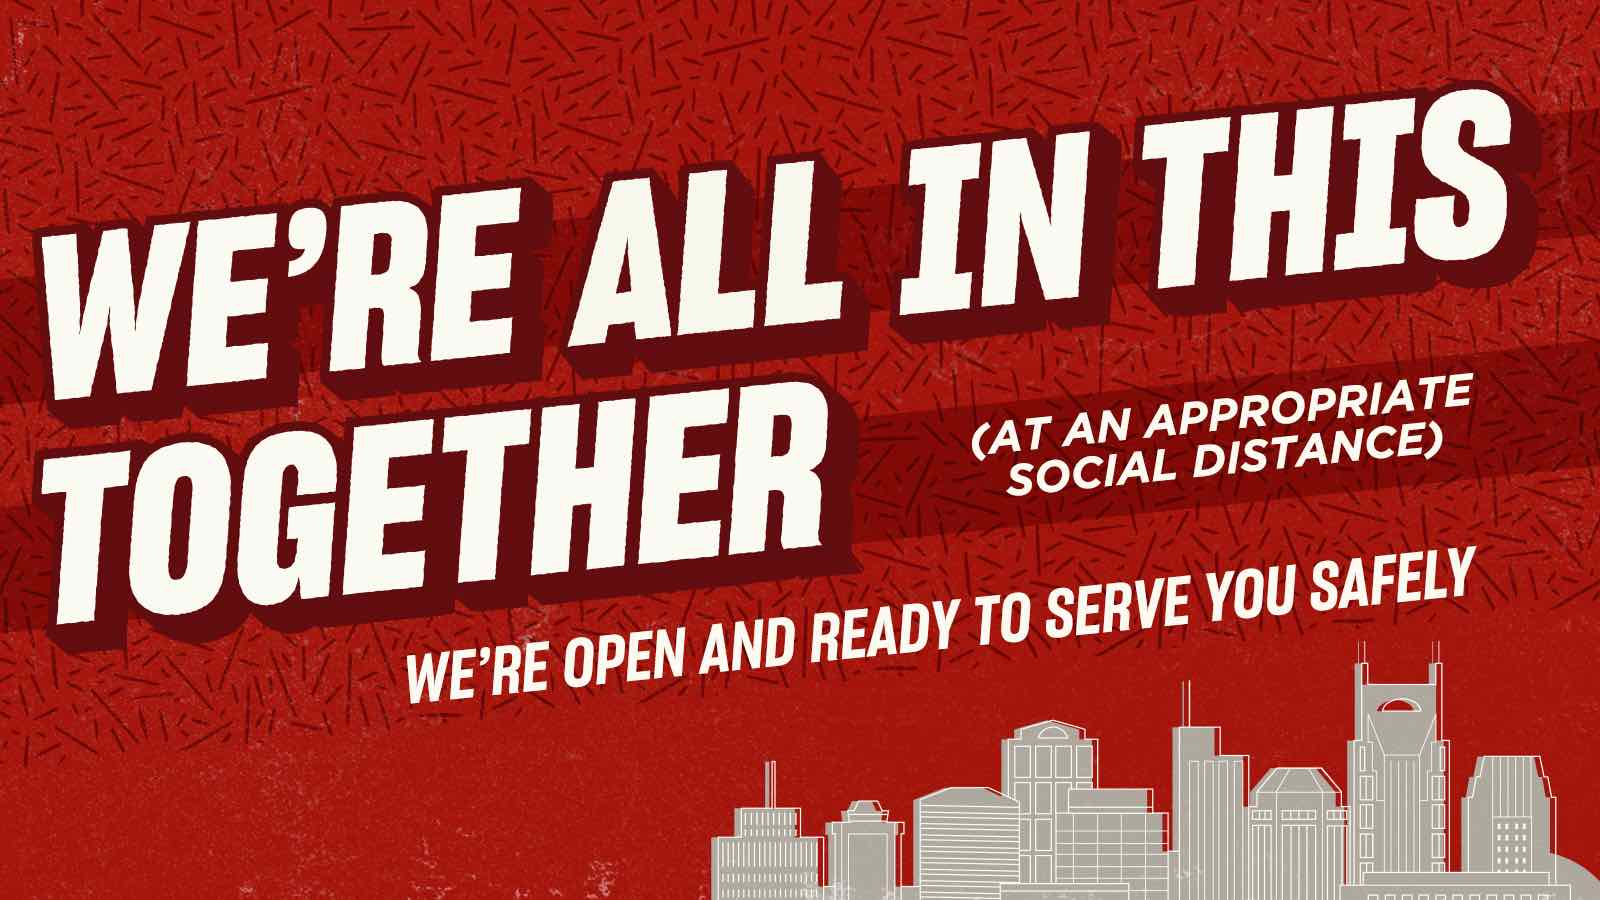 We're all in this together (at an appropriate social distance) - We're Open and Ready to Serve You Safely